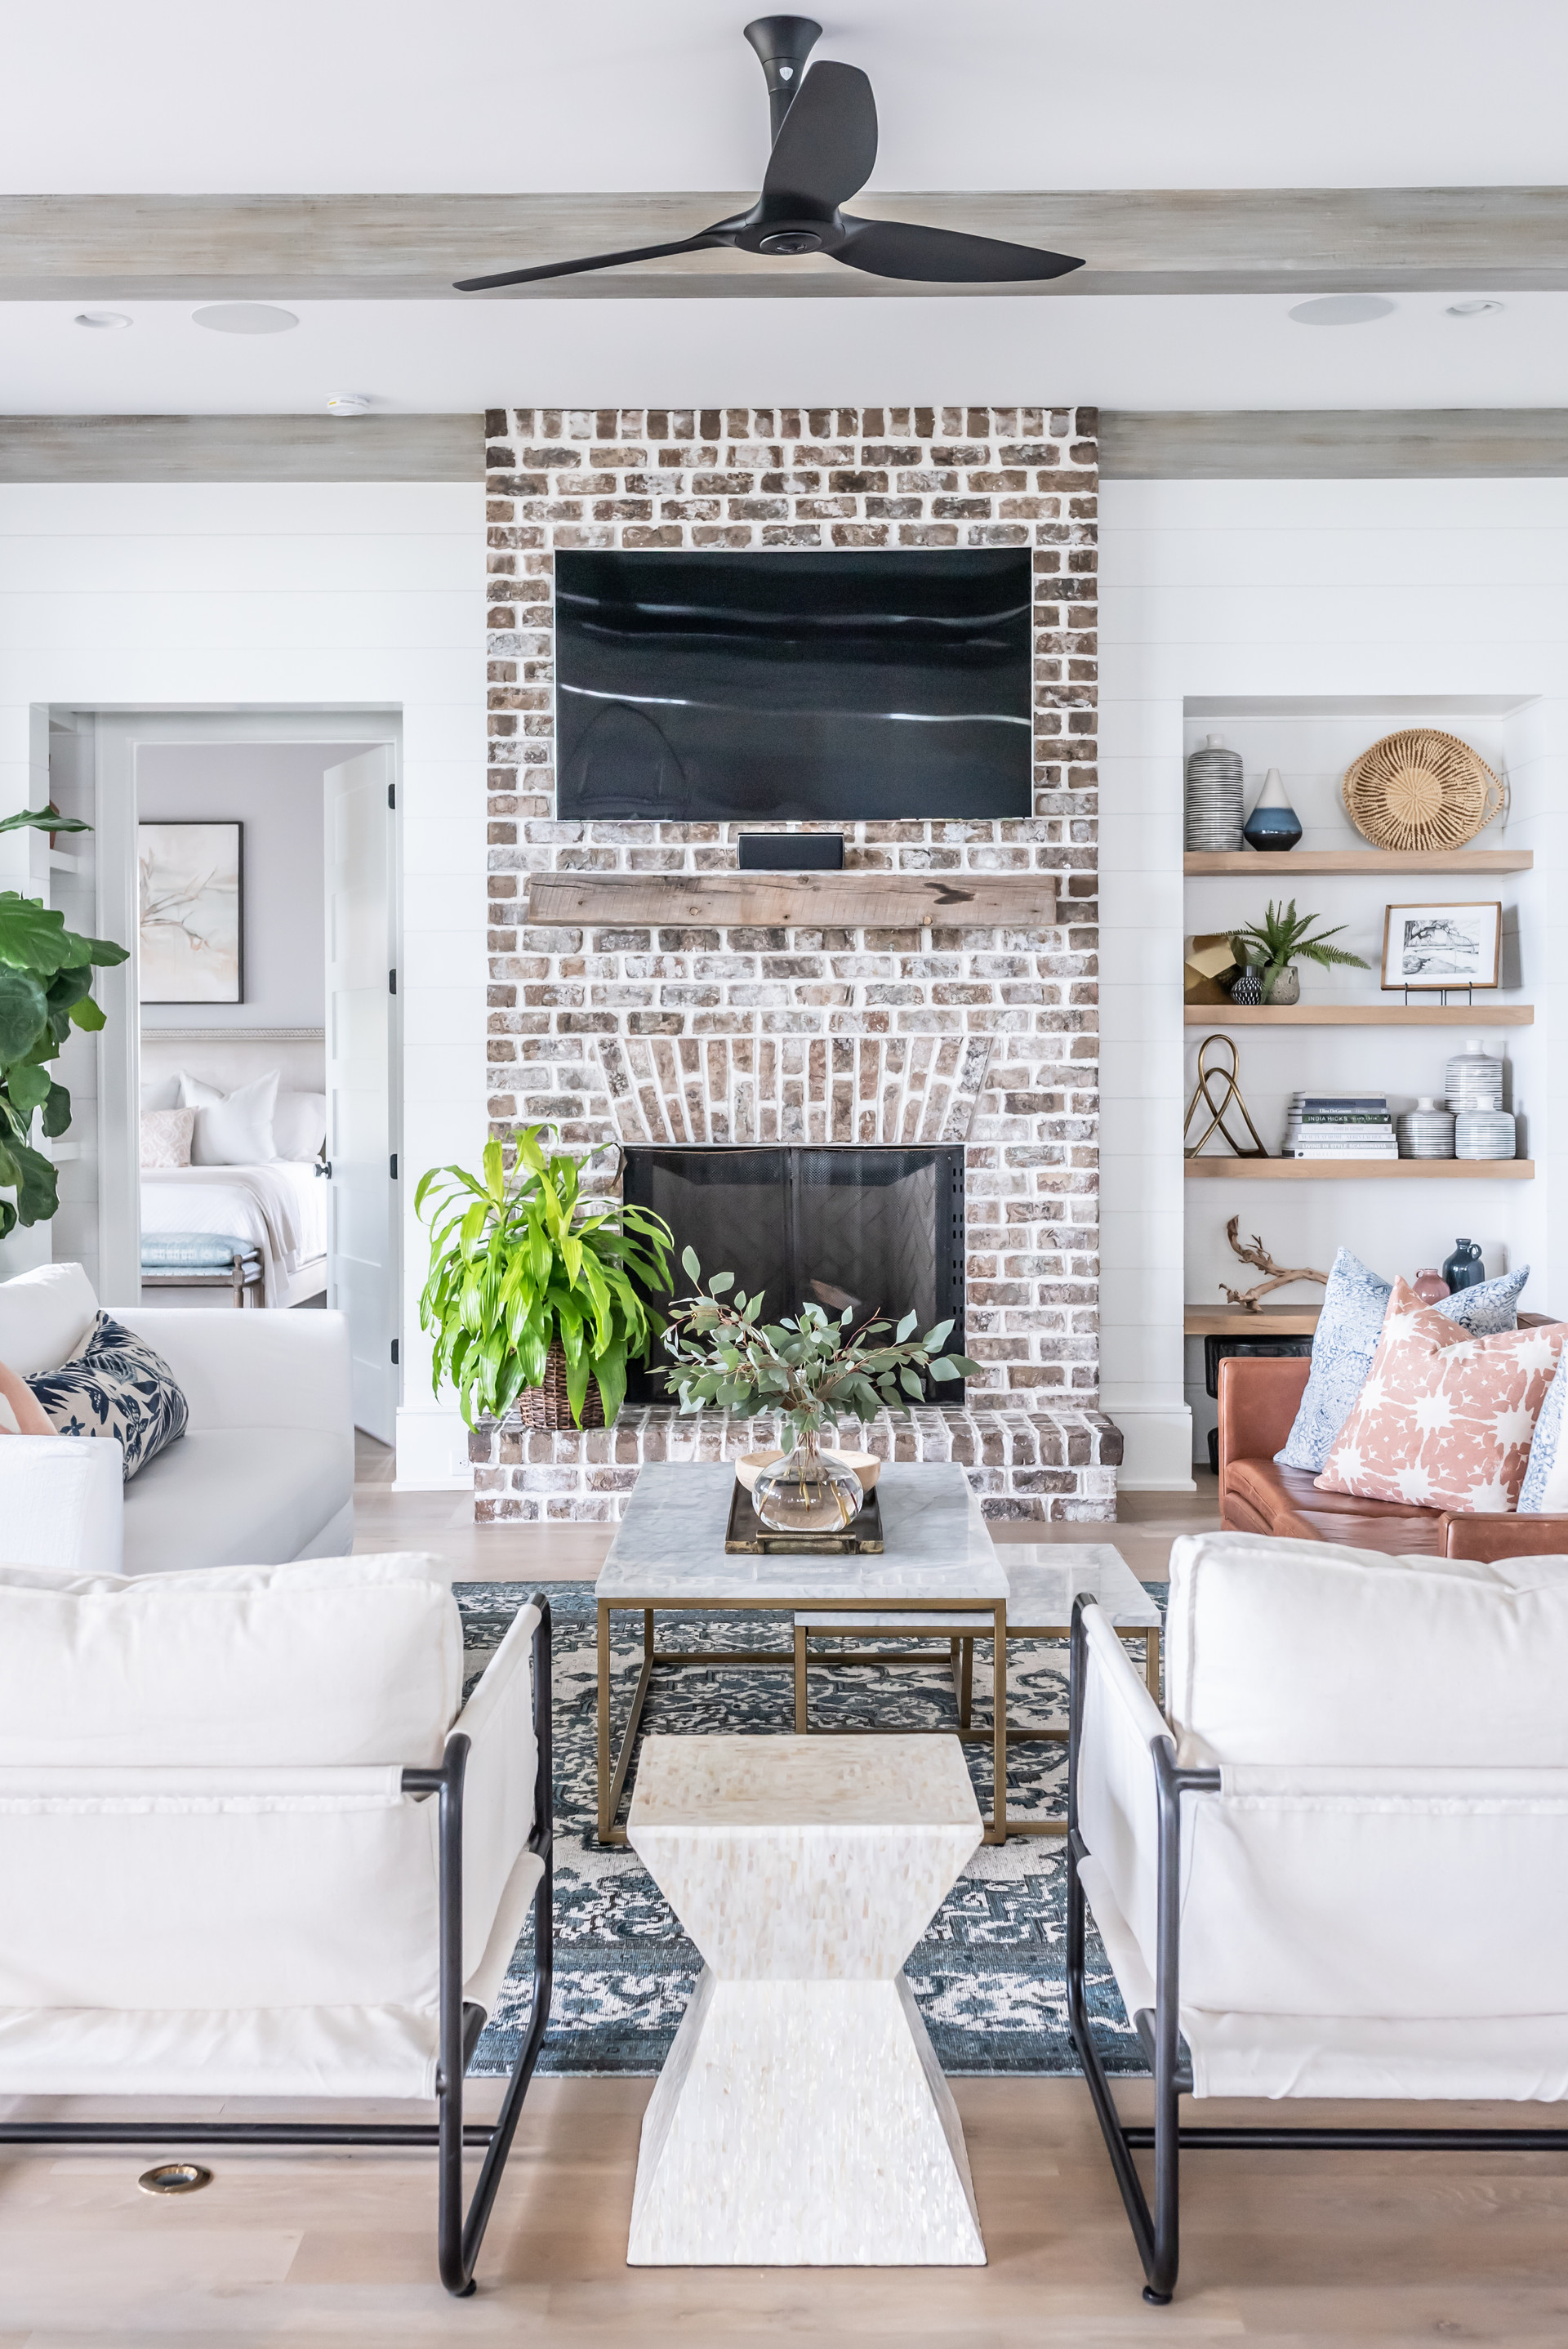 ADC-May1-2019-Living-Room-6.jpg